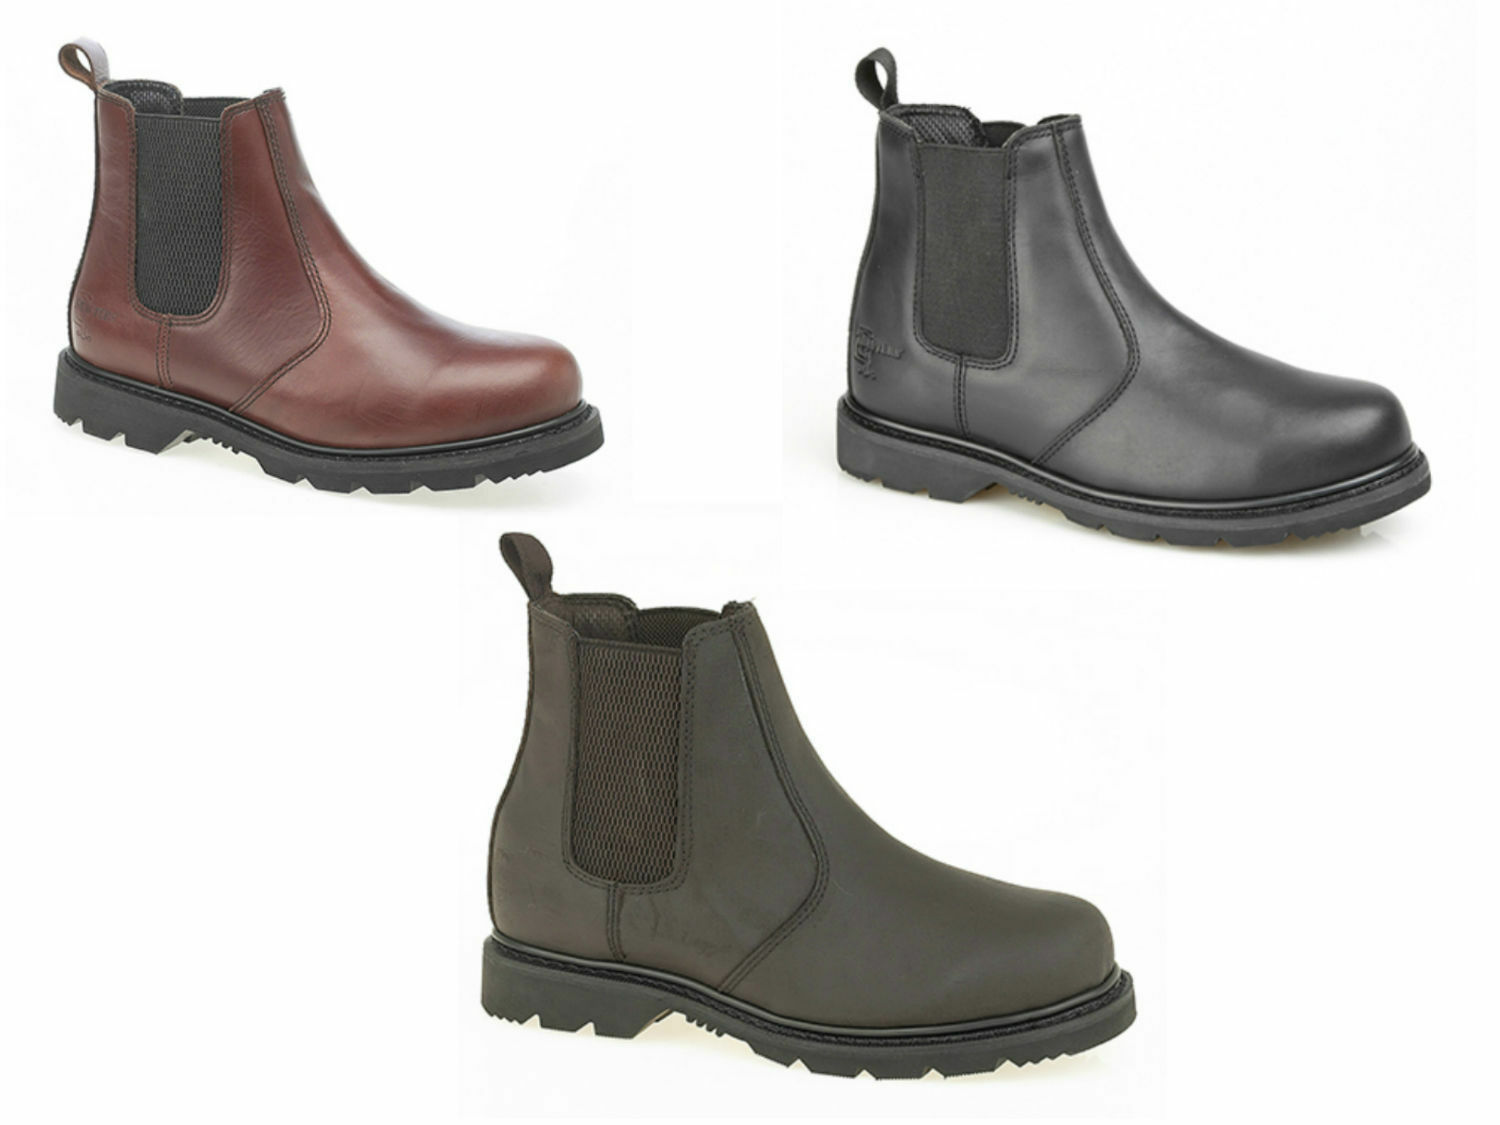 Uomo BOYS LEATHER la Chelsea Dealer Boots. GOODYEAR la LEATHER suola. Taglie 6-12UK 3d376d